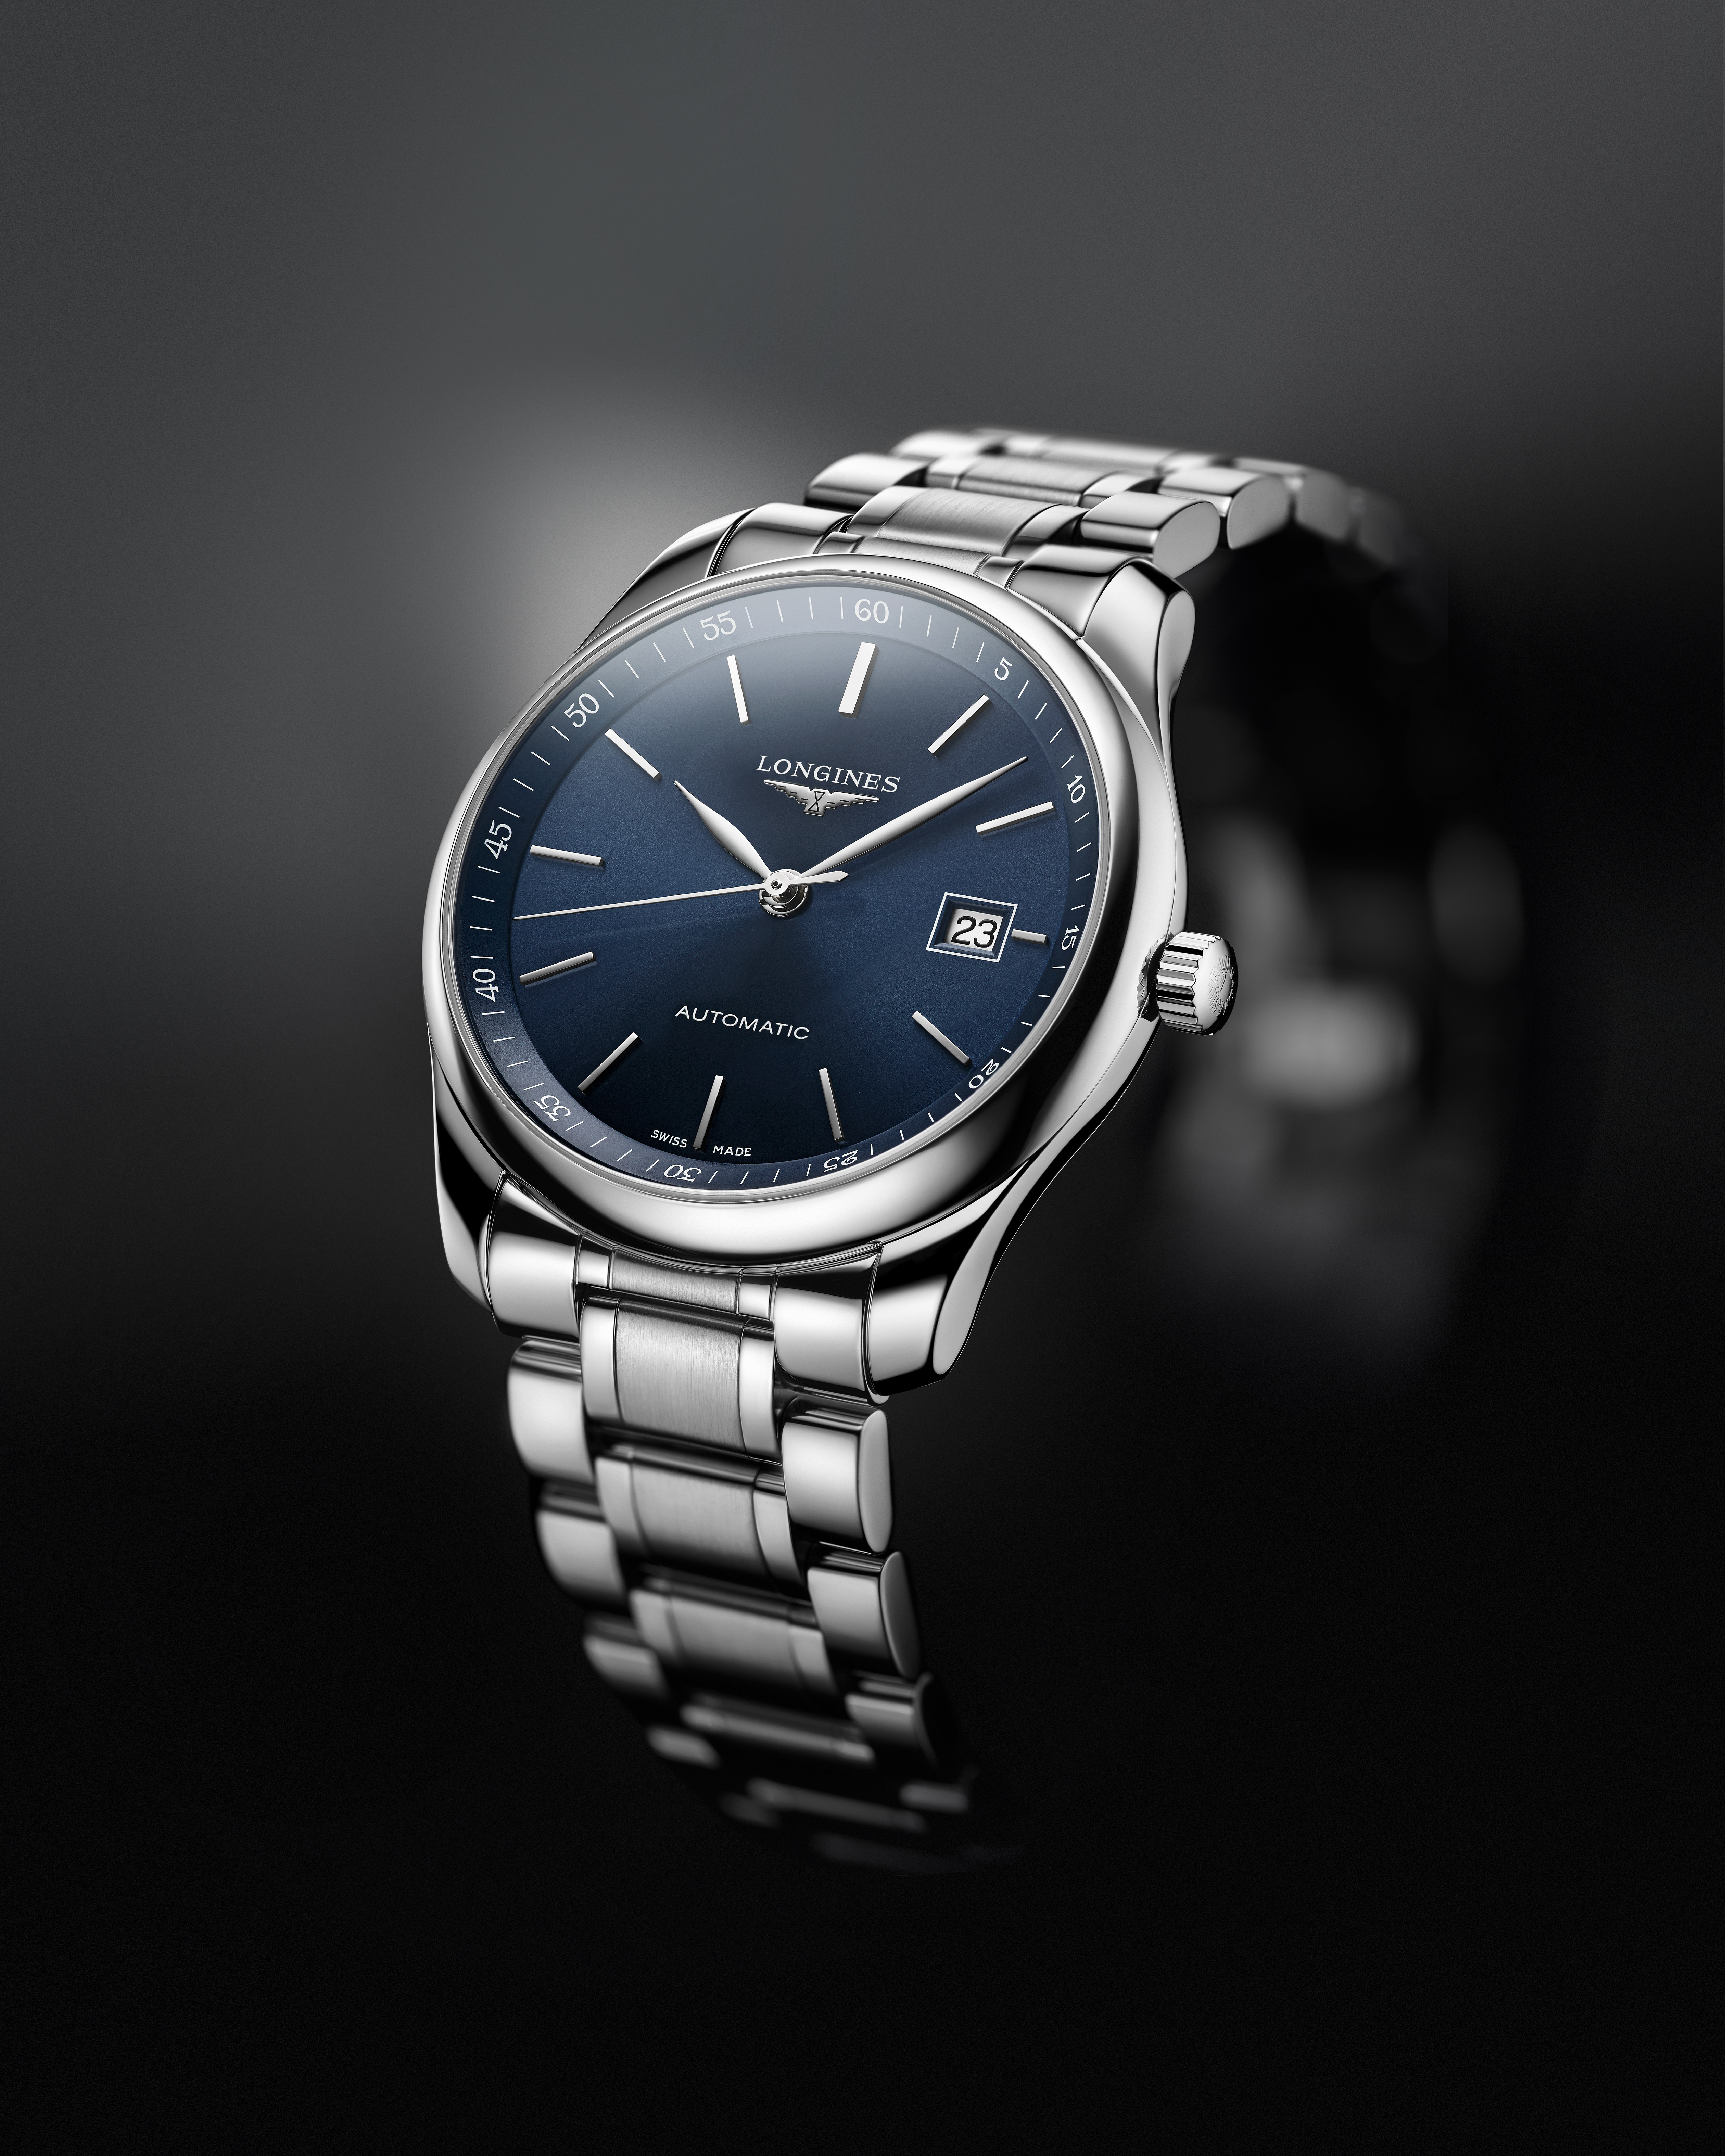 The Longines Master Collection blue dial is the Official Watch of The Breeders' Cup World Championships. This 42-mm steel model features a sunray blue dial. It is powered by an automatic L888 caliber.